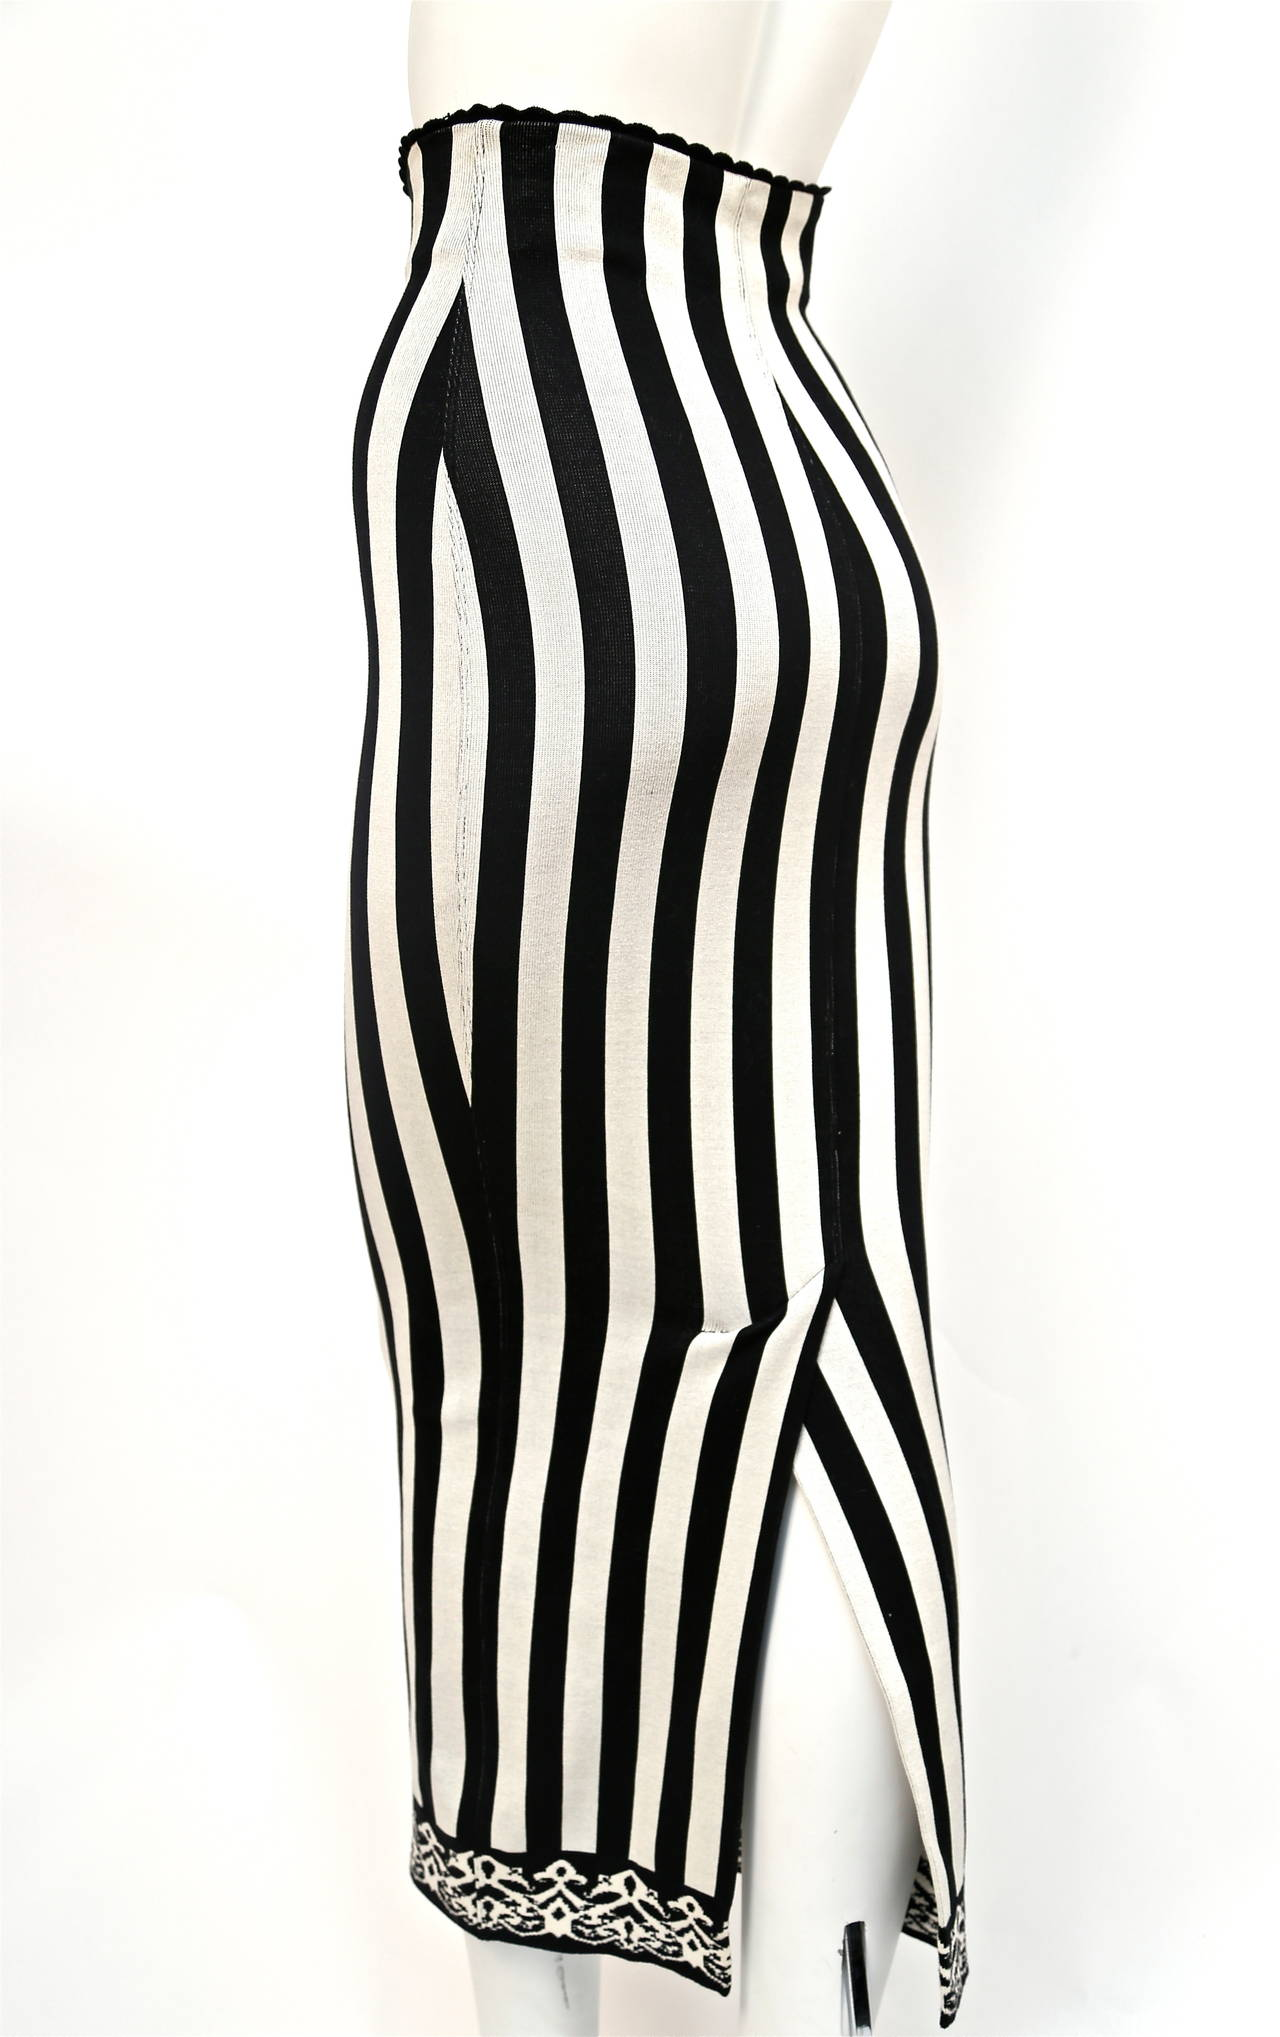 "Black and white striped skirt with scalloped waistline and trim at hemline from Azzedine Alaia dating to 1992. Size 'S'. Approximate measurements (unstretched): waist 23.5"", hips 30"" and length 36"". Pulls on. Made in Italy. Excellent condition."